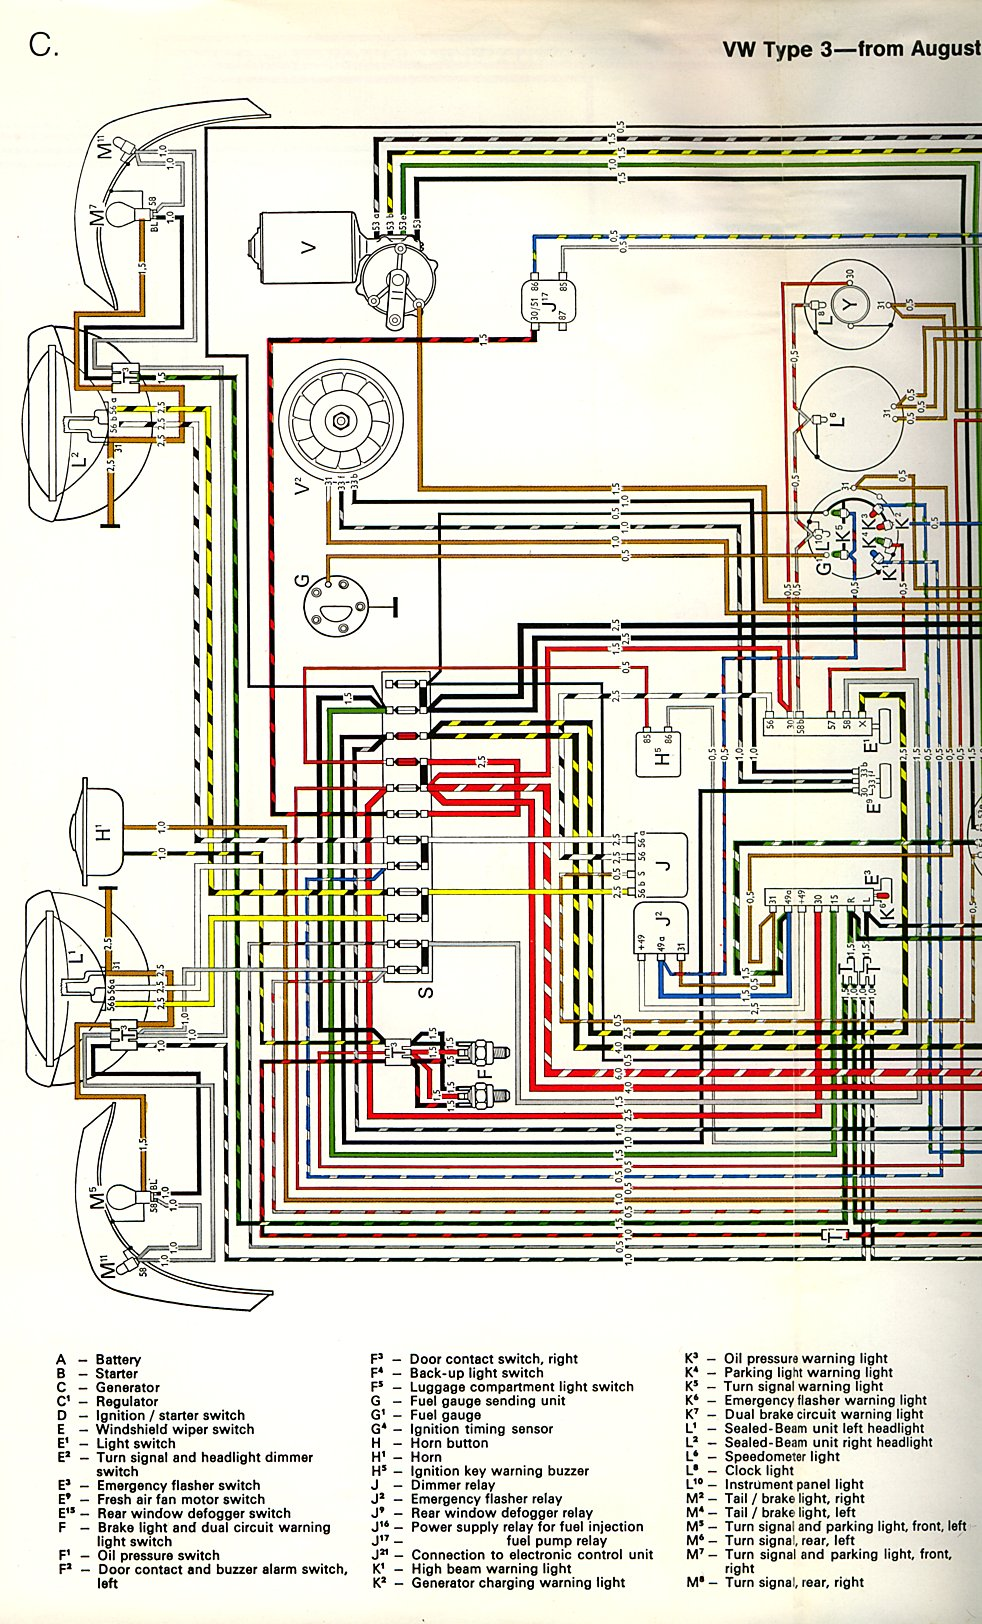 1979 Super Beetle Front Blinker Wiring Diagram 46 1973 Cuda Thesamba Com Type 3 Diagrams